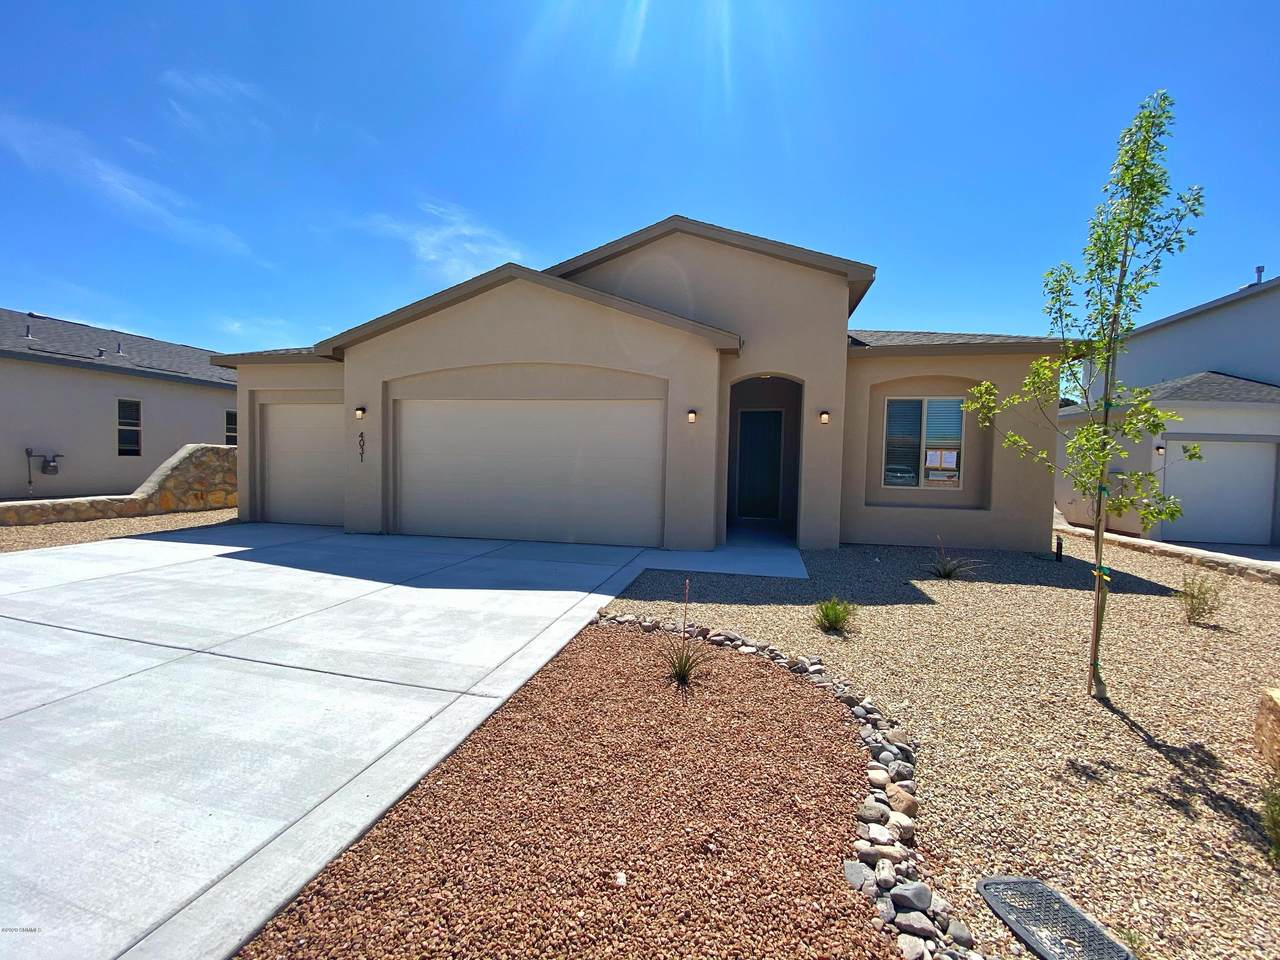 4031 Bravia Dove Loop - Photo 1